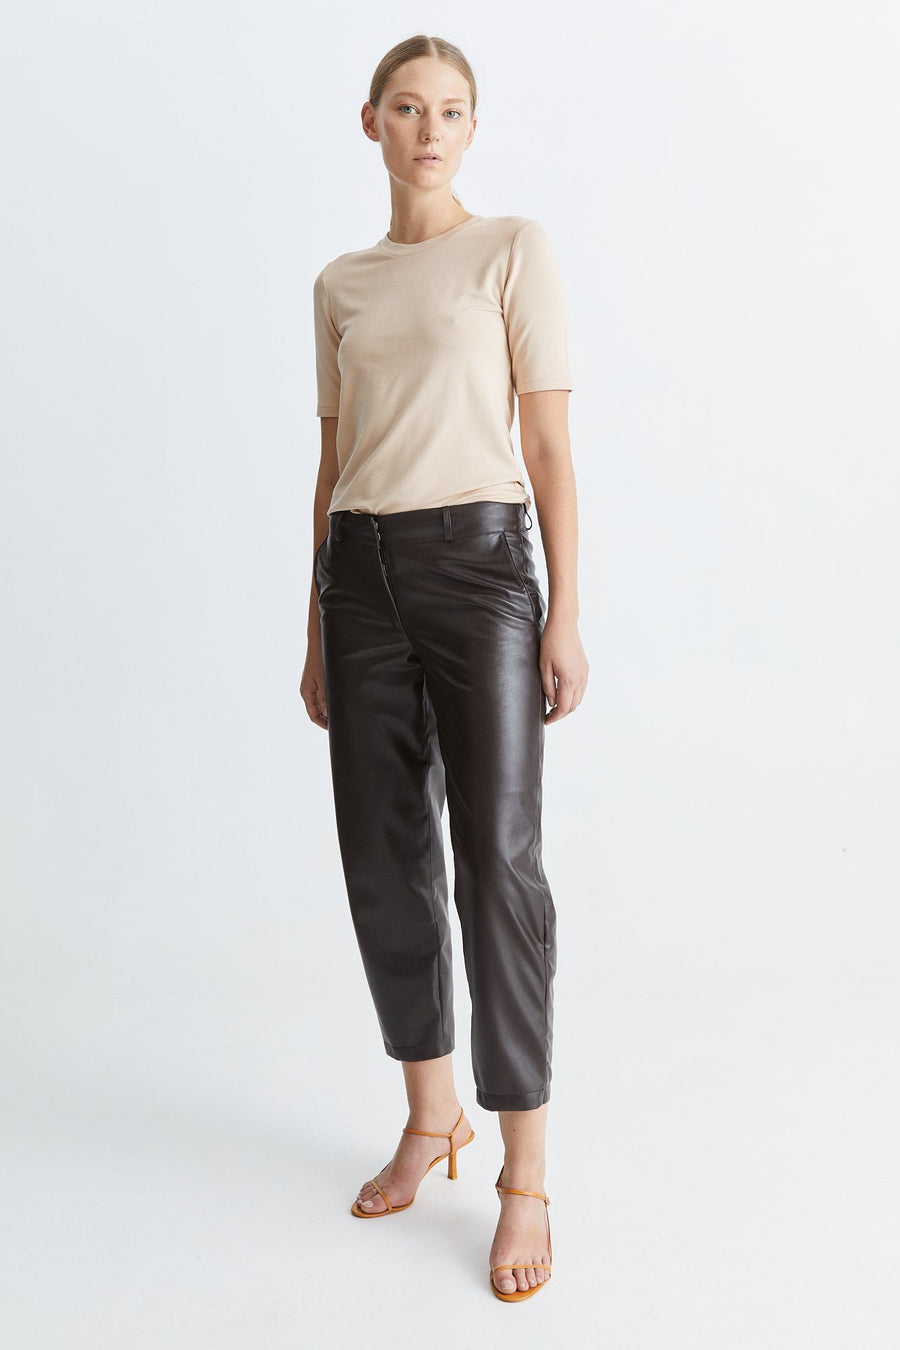 CHAMBERS TOP - NUDE Top Stylein